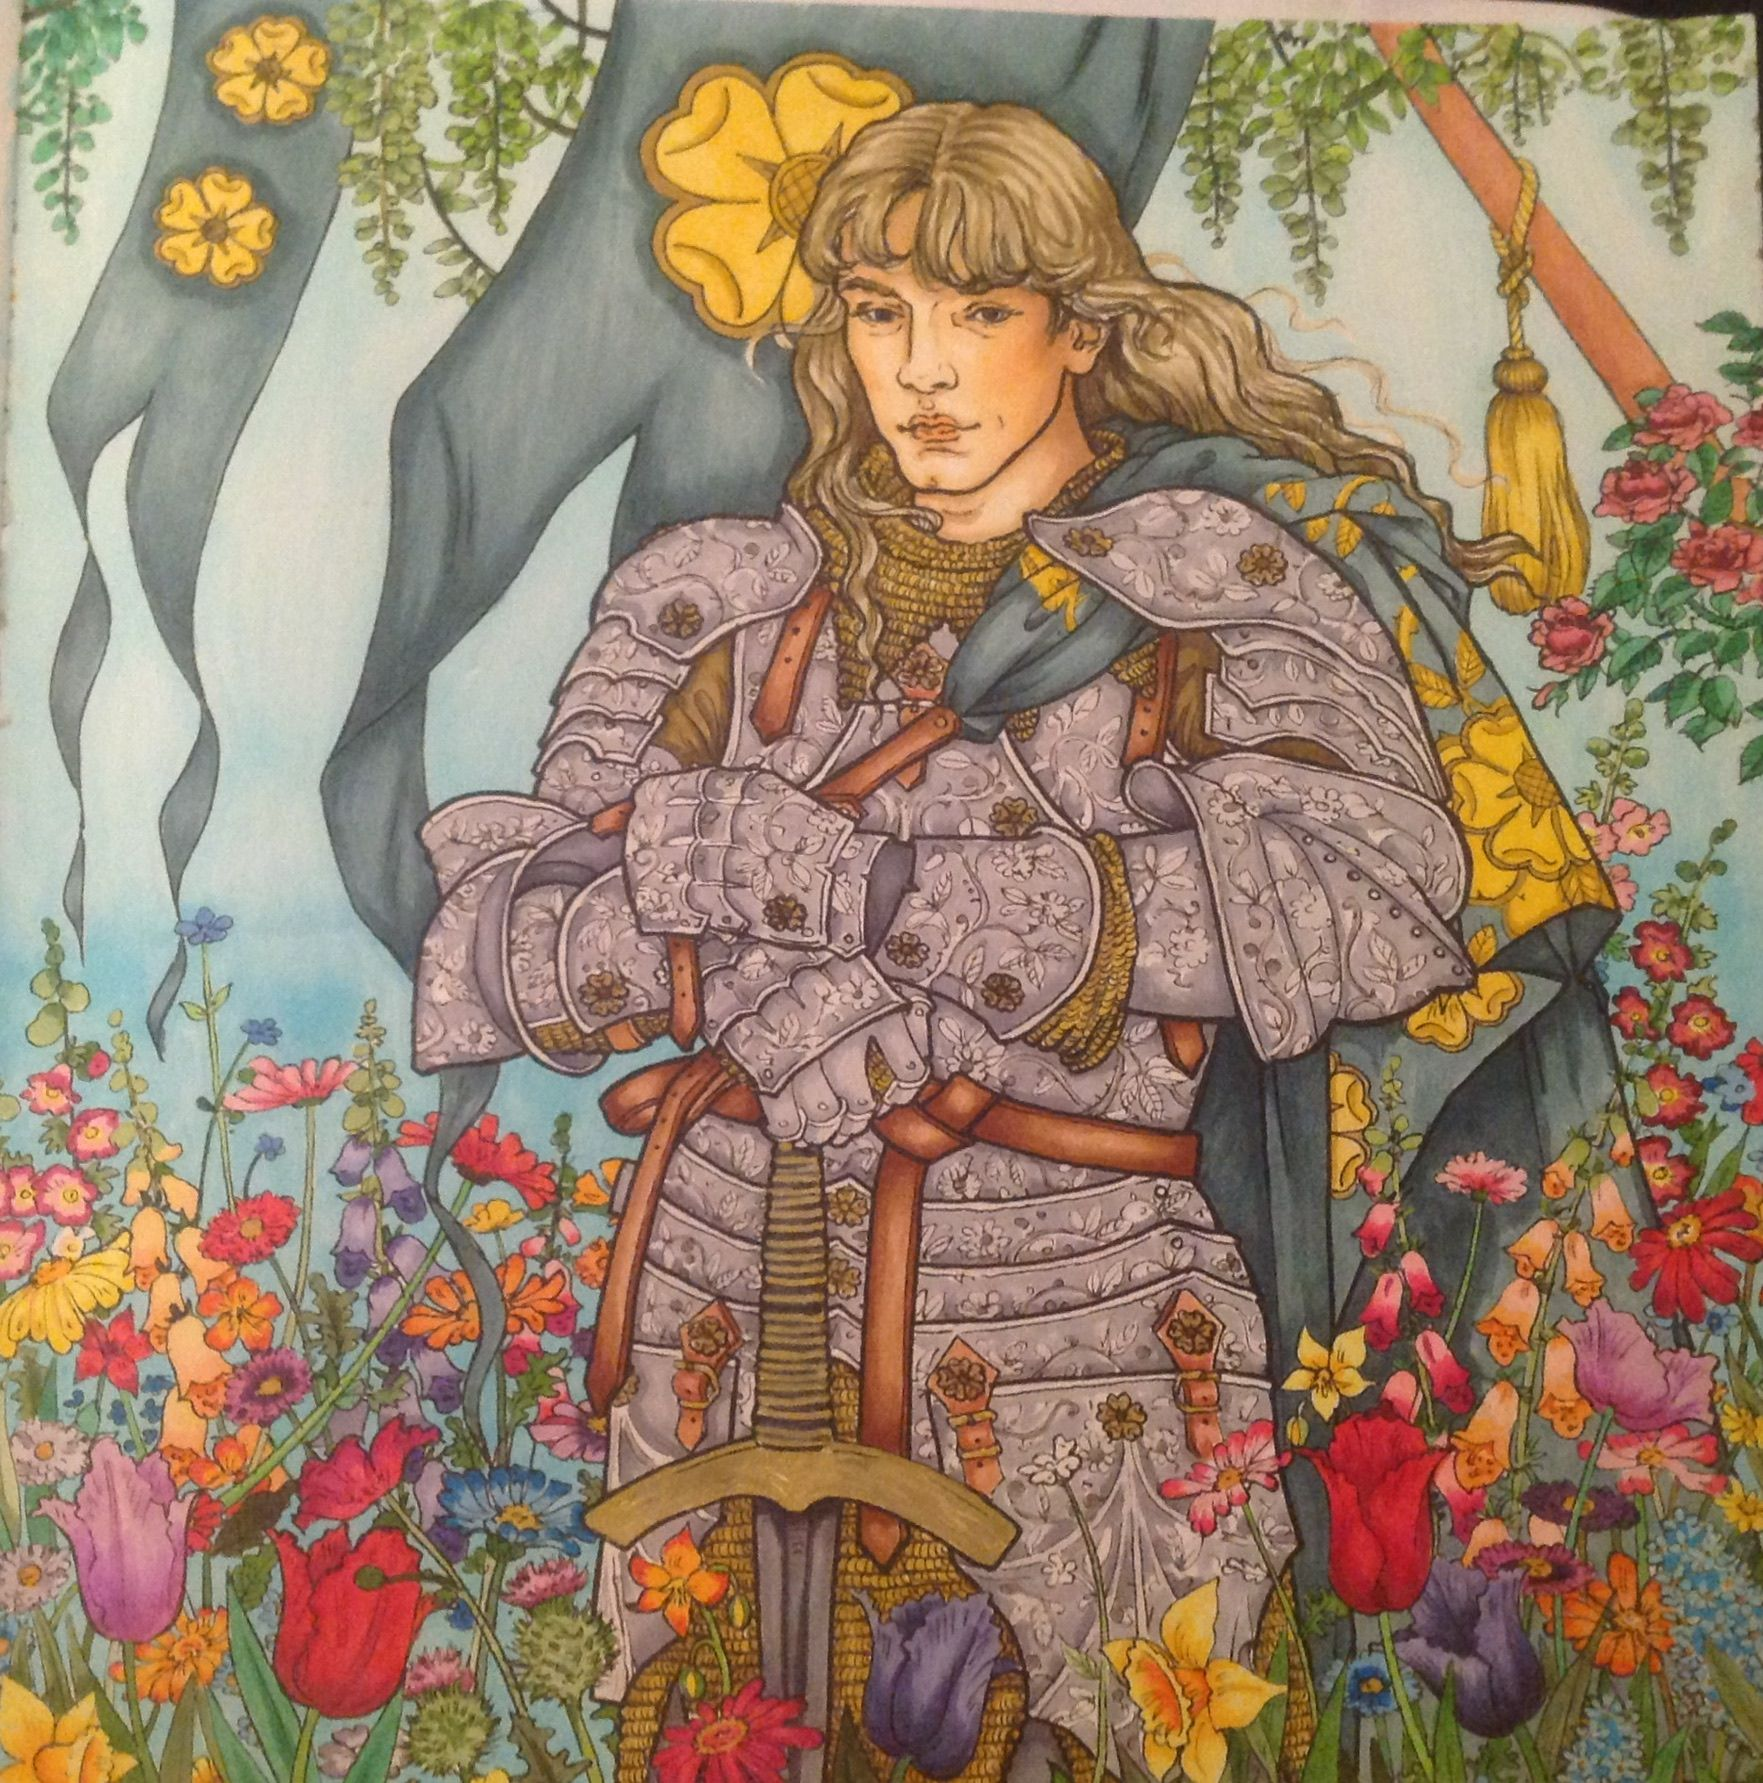 Copic Coloring Game Of Thrones Book Colored By Sonya Sena Margason